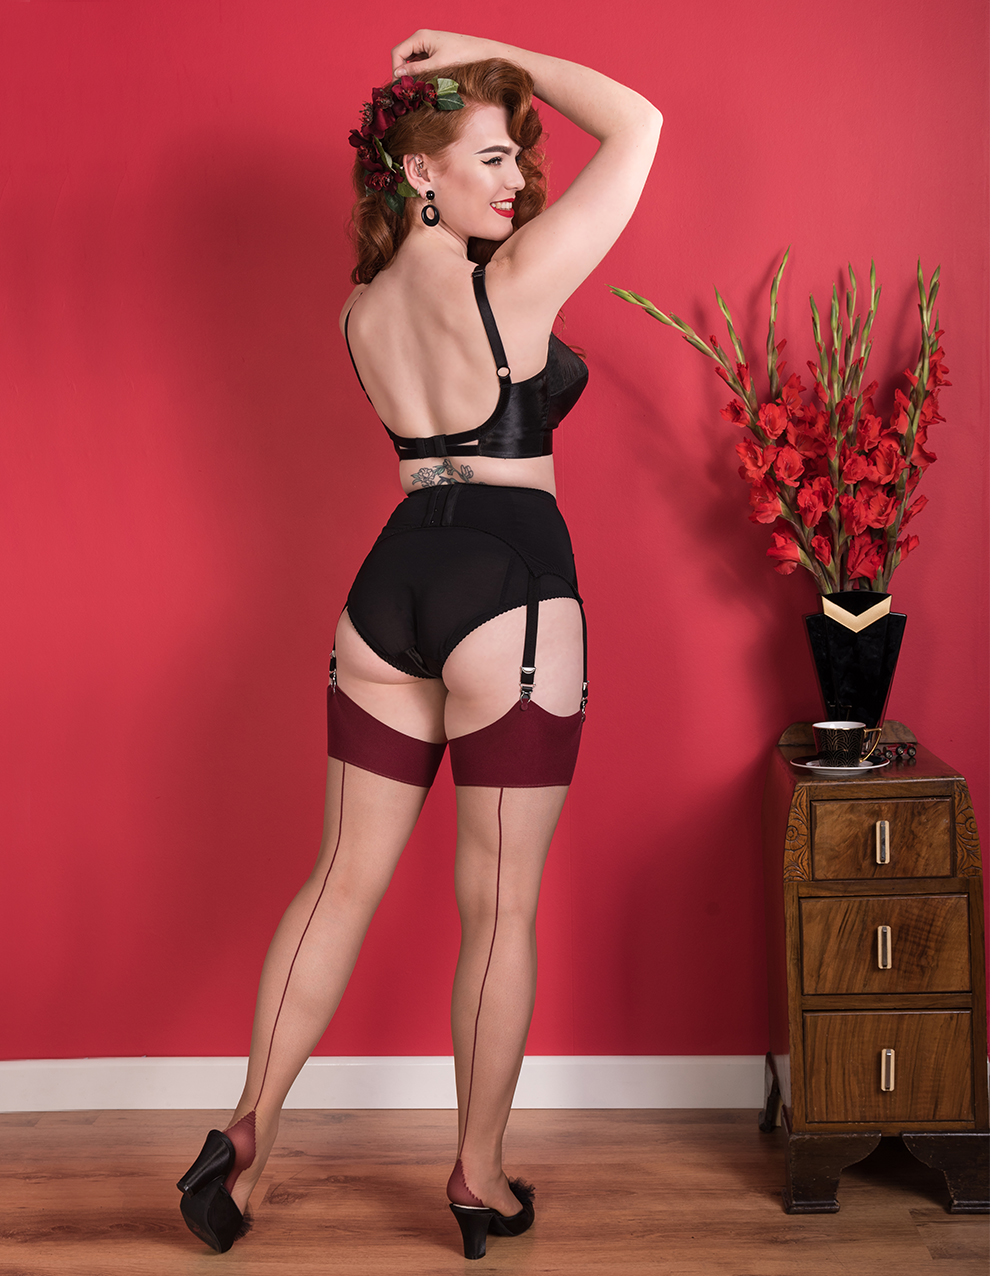 c85f2721c Miss Deadly Red in Maitresse Nouveau Lingerie and Champagne Claret Glamour  Seamed Stockings ...